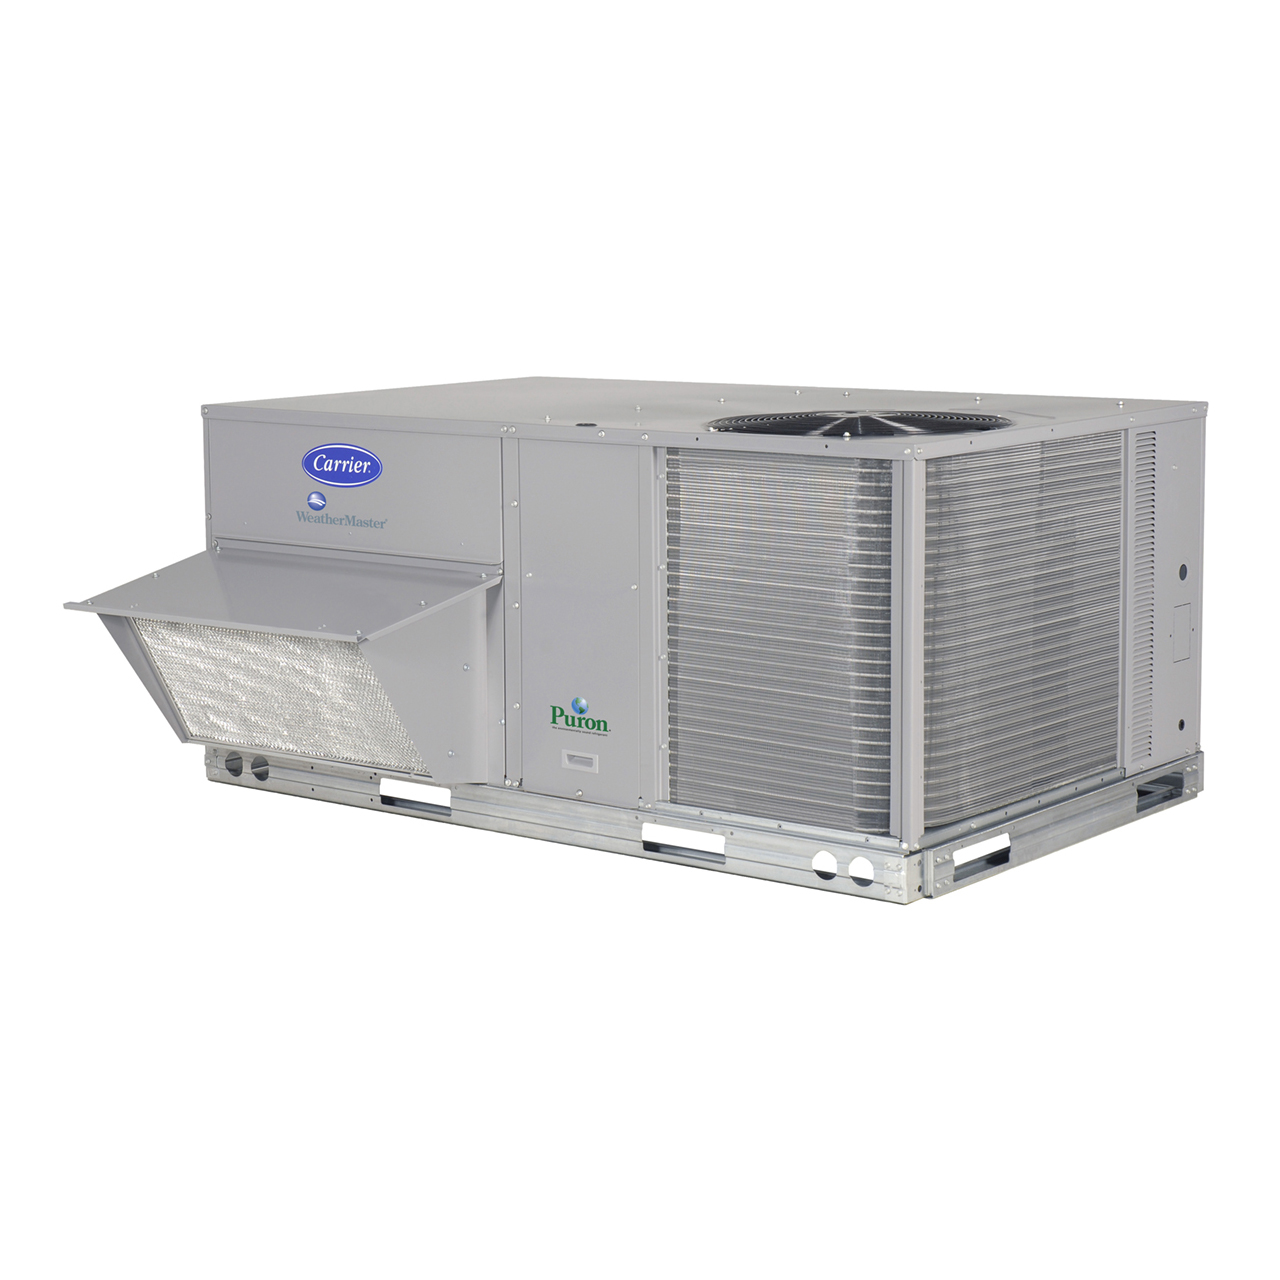 "WeatherMaster® 50HCQ rooftop units were designed to be easy to install, maintain, and operate, with customer-requested features including a gage port, centralized control center, plug-and-play accessory board, ""no-strip screw"" collars, and handled access panels."